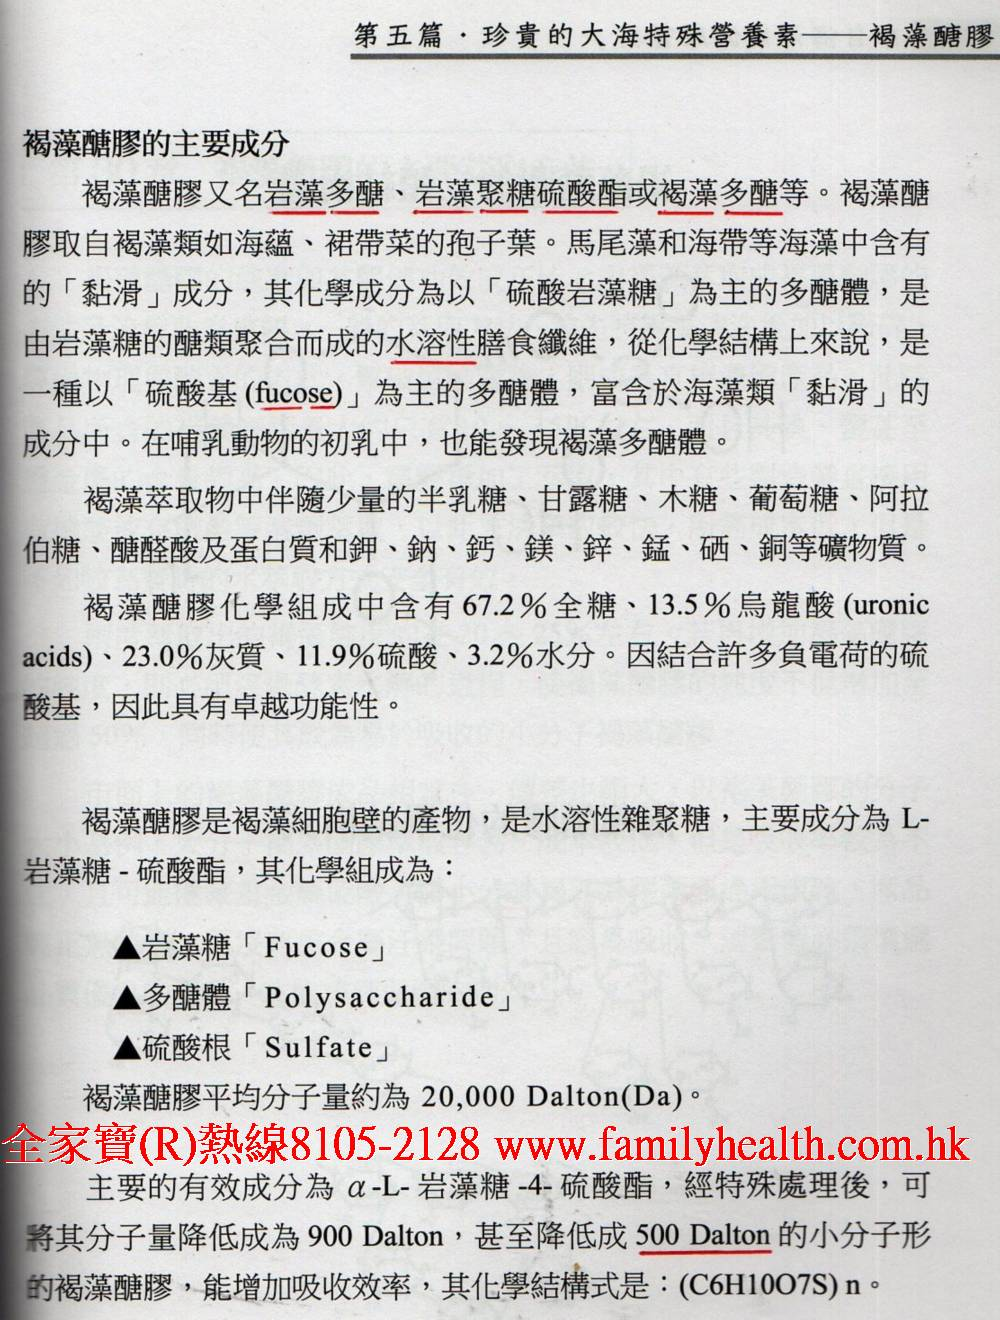 http://www.familyhealth.com.hk/files/full/865_2.jpg